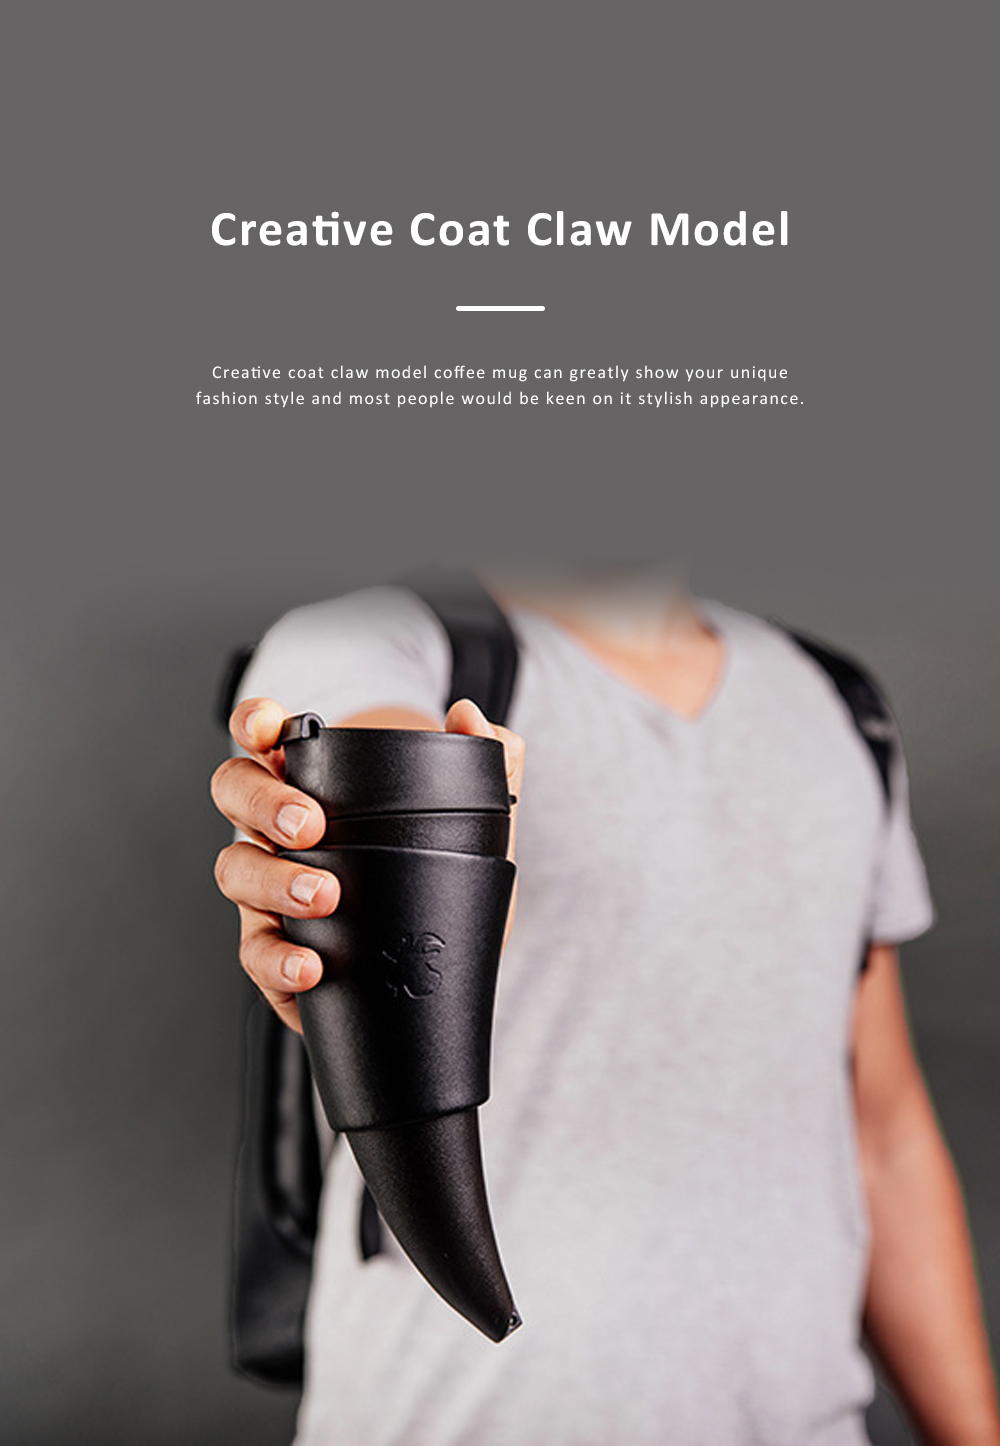 Stylish Creative Goat Claw Model Coffee Mug With Cover Leather Cup Cover Supporter Portable Outdoors Cup 3